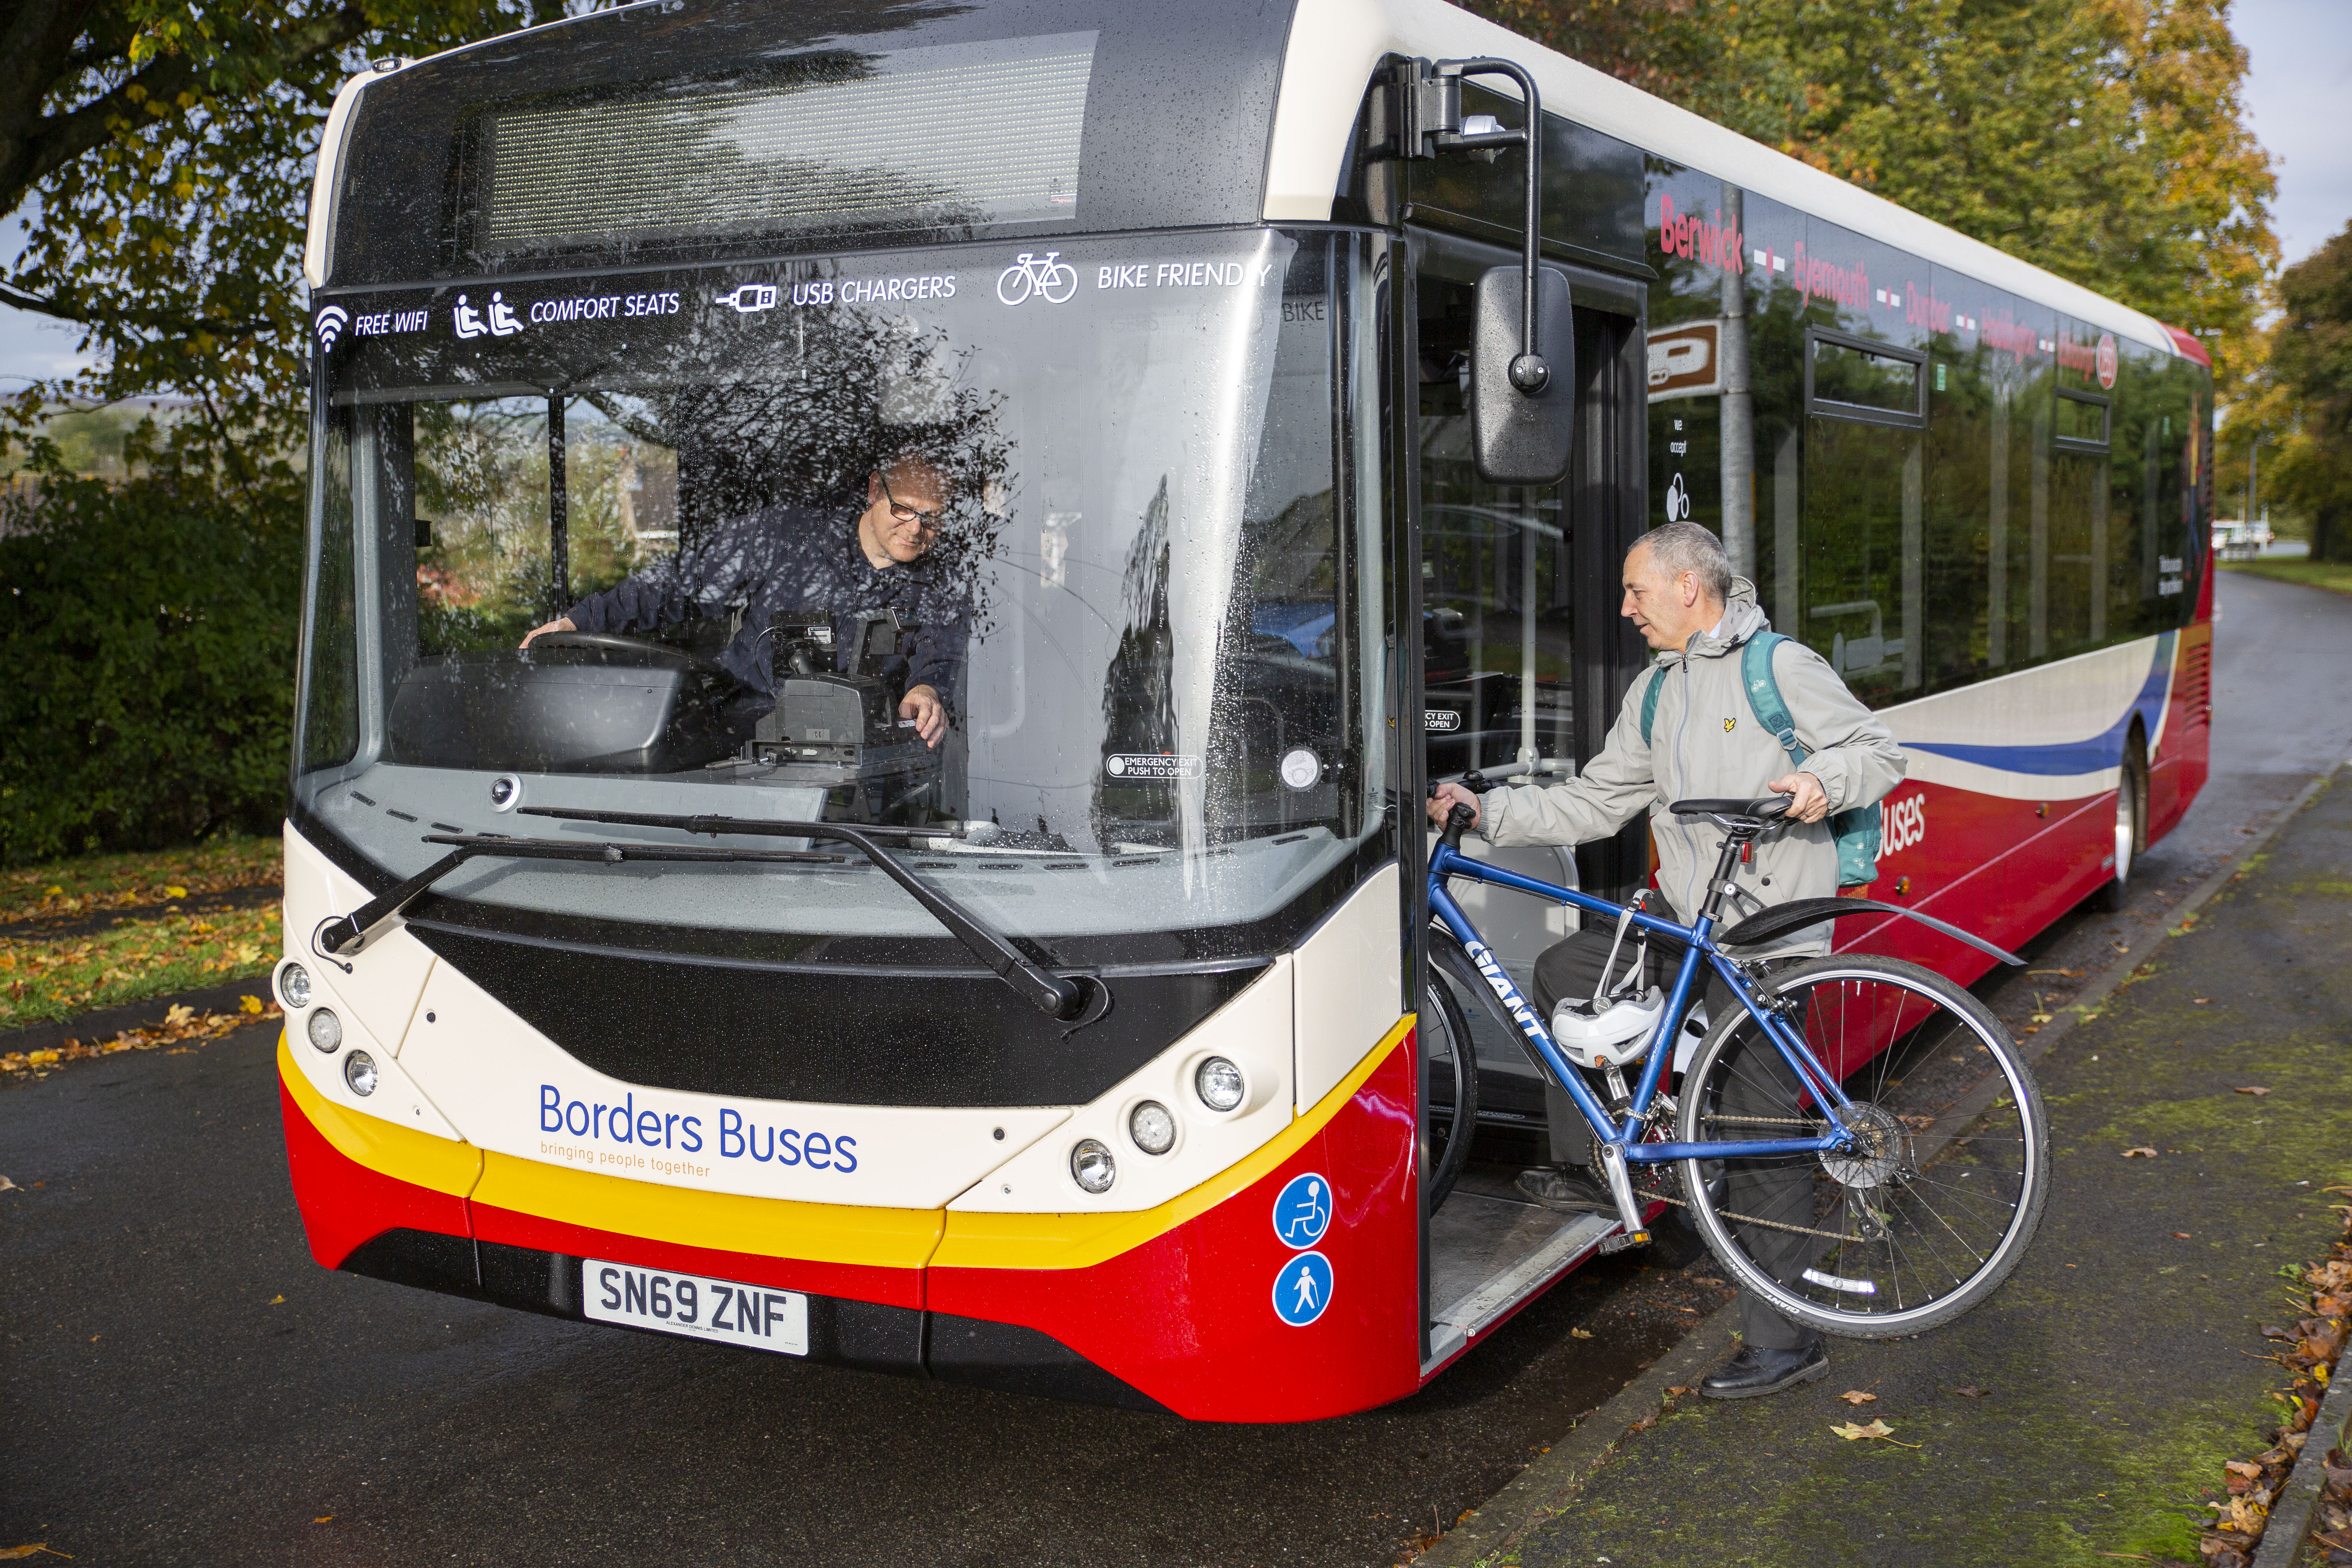 man gets on bus with bike